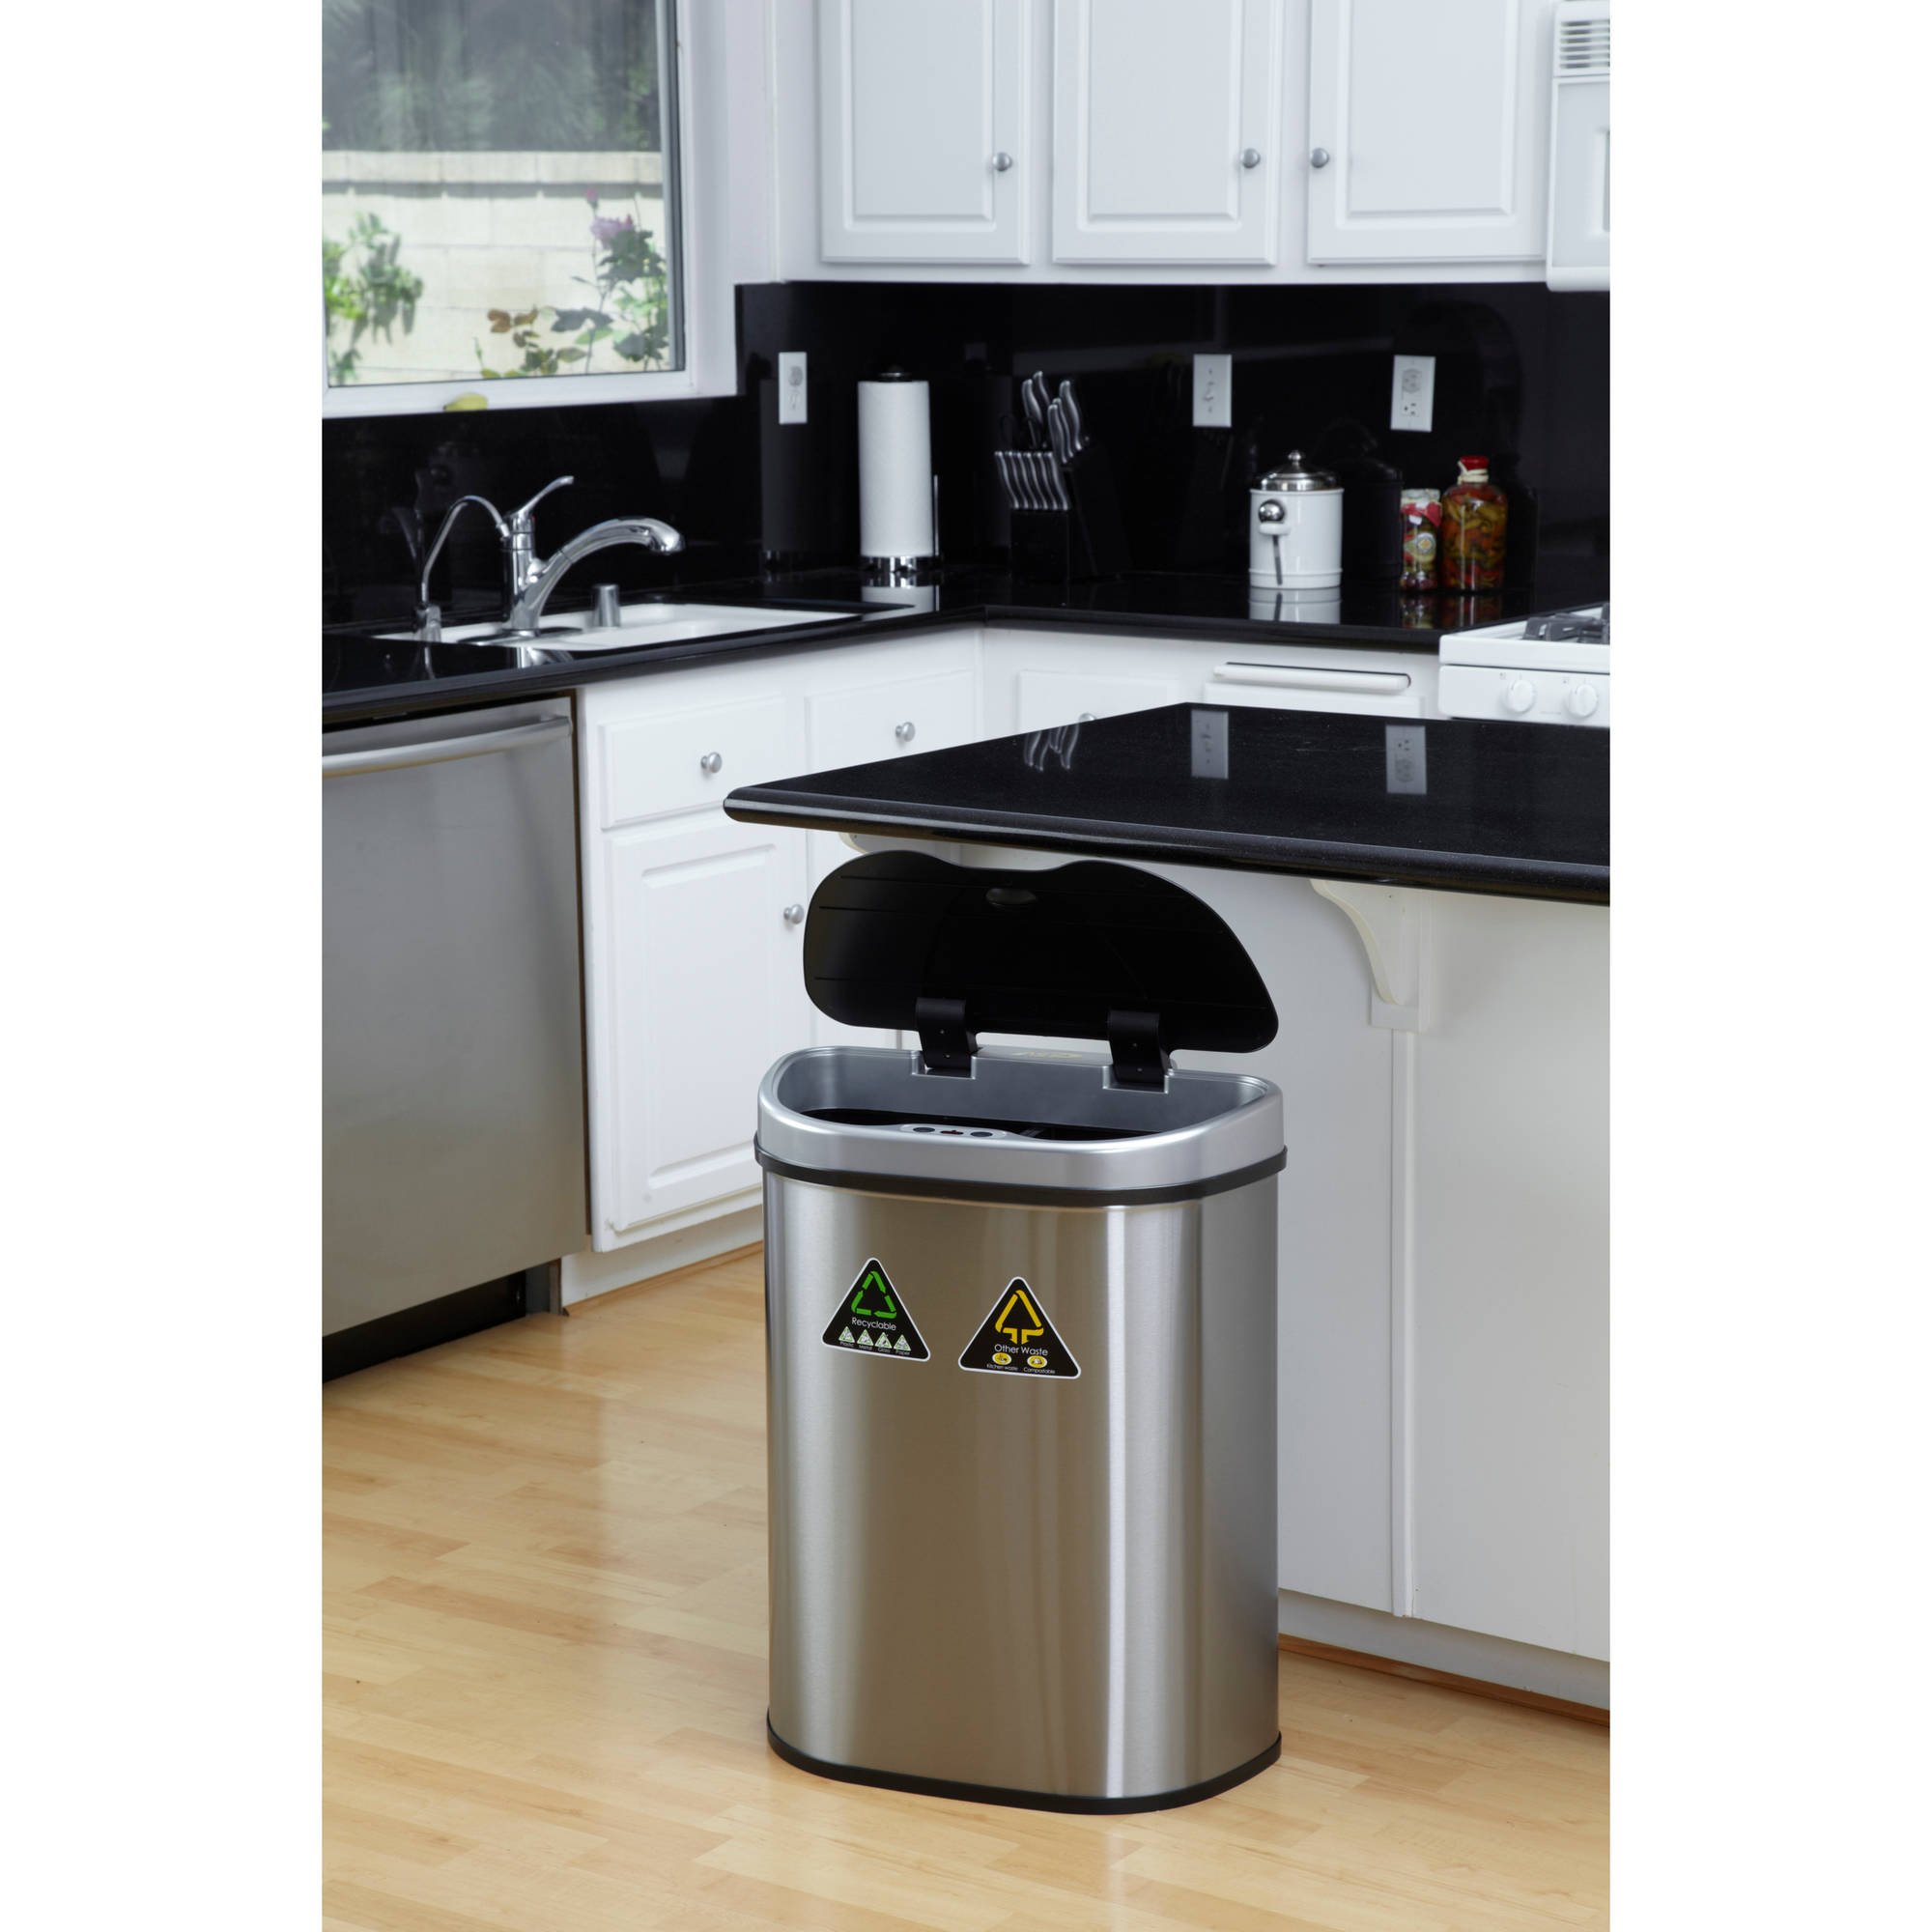 Kitchen Garbage Can With Lid Automatic Open Trash Can Recycle Bin Combo Touchless Lid